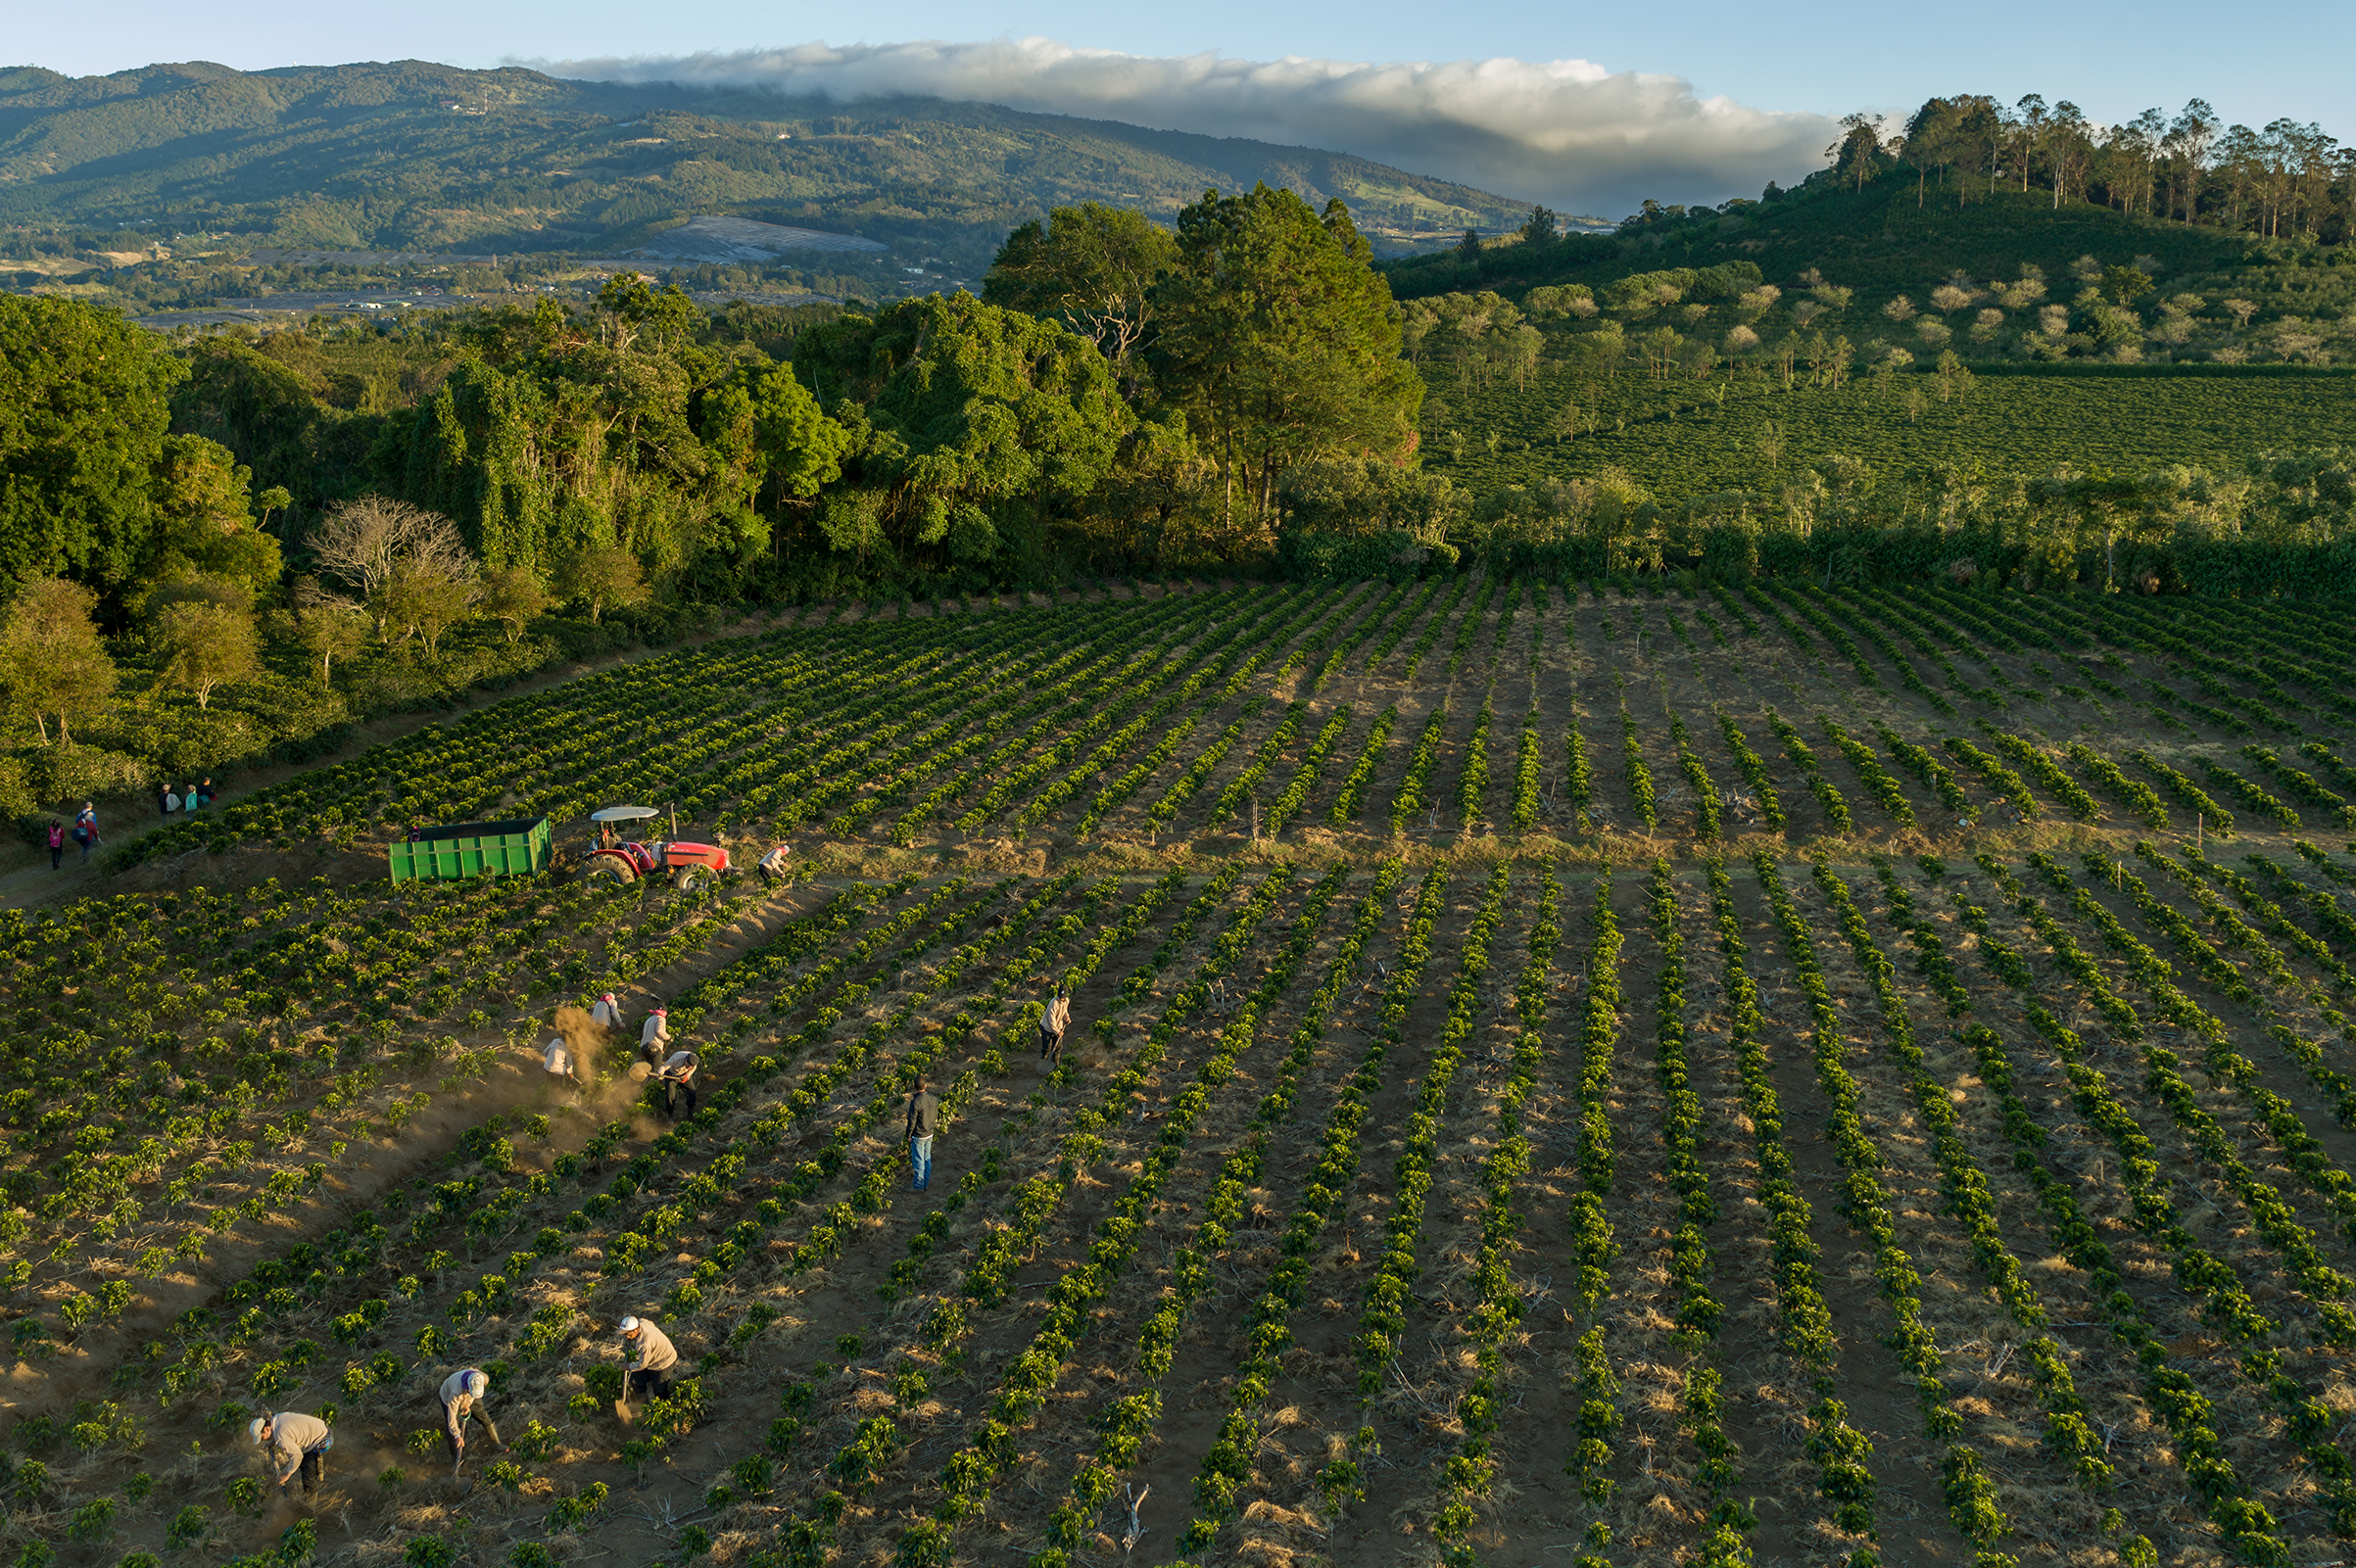 Workers weed coffee plants at a Starbucks-owned coffee farm in Costa Rica, where climate change could damage the health of the industry